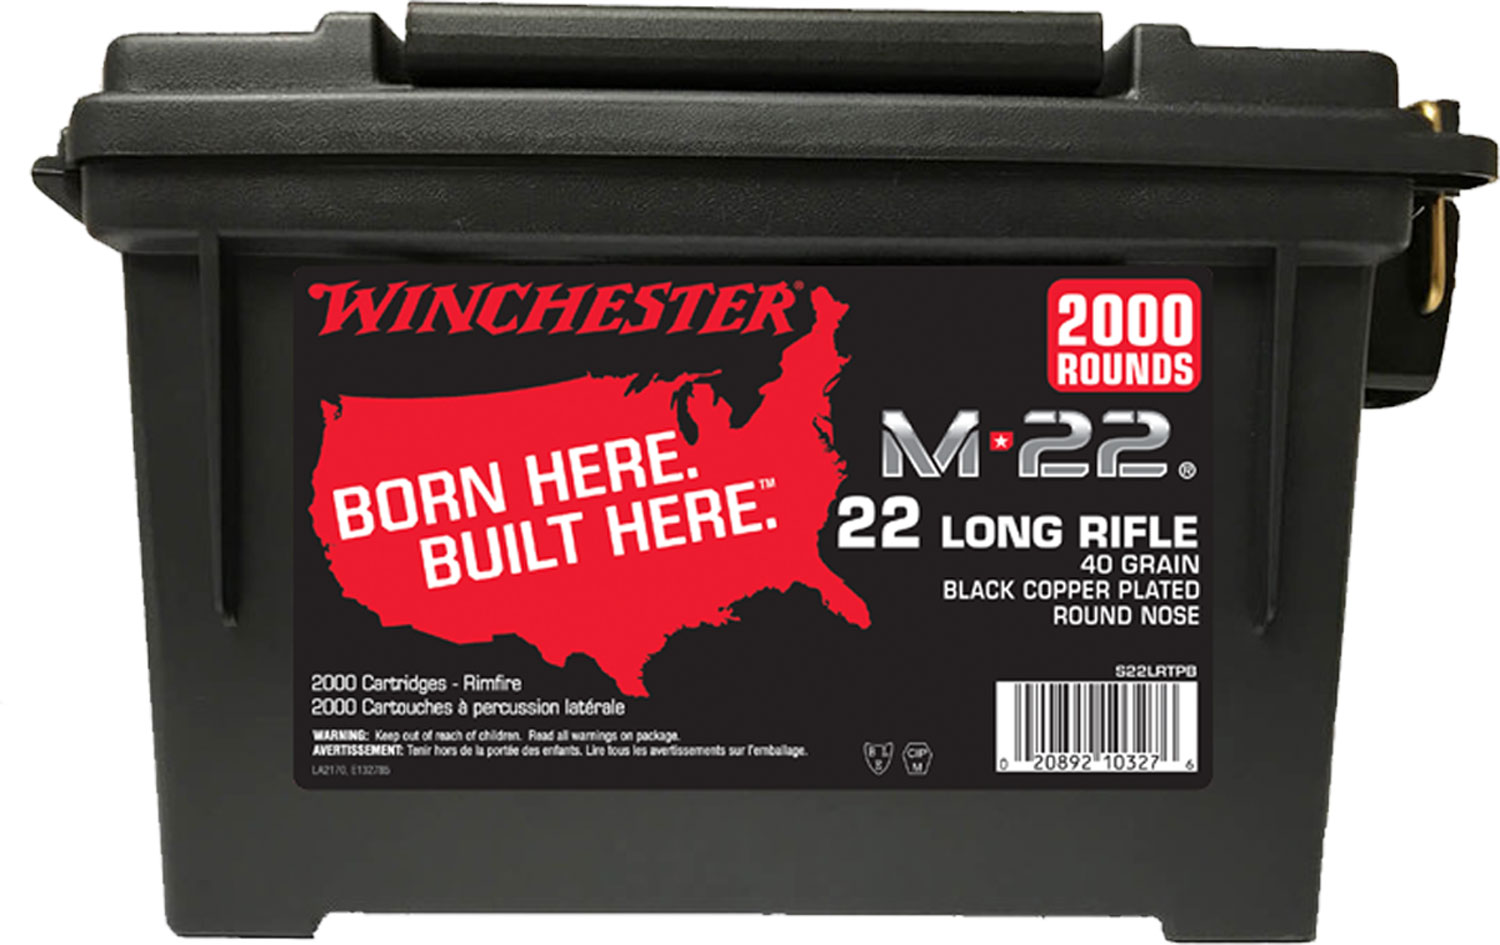 Winchester Ammo S22LRTPB Winchester Rimfire Ammo Can 22 Long Rifle 40 GR Lead Round Nose 2000 Bx/ 2 Cs 4000 Total